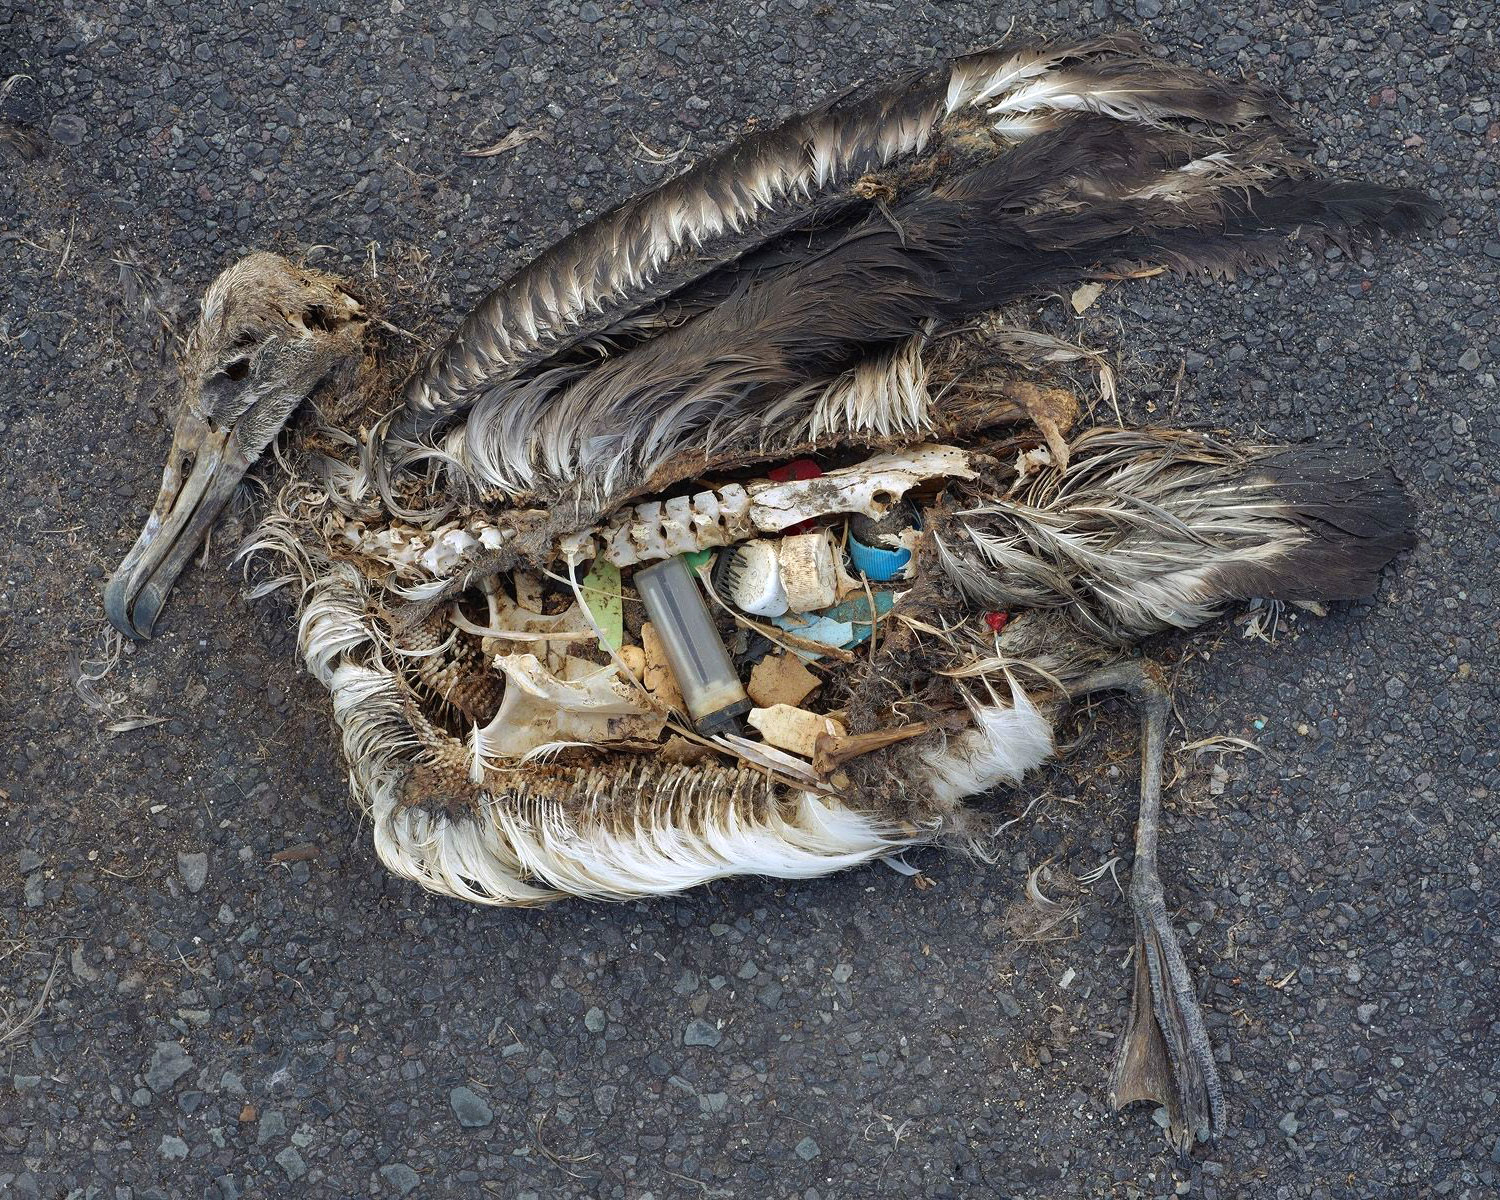 Deab Albatross filled with random trash he had eaten